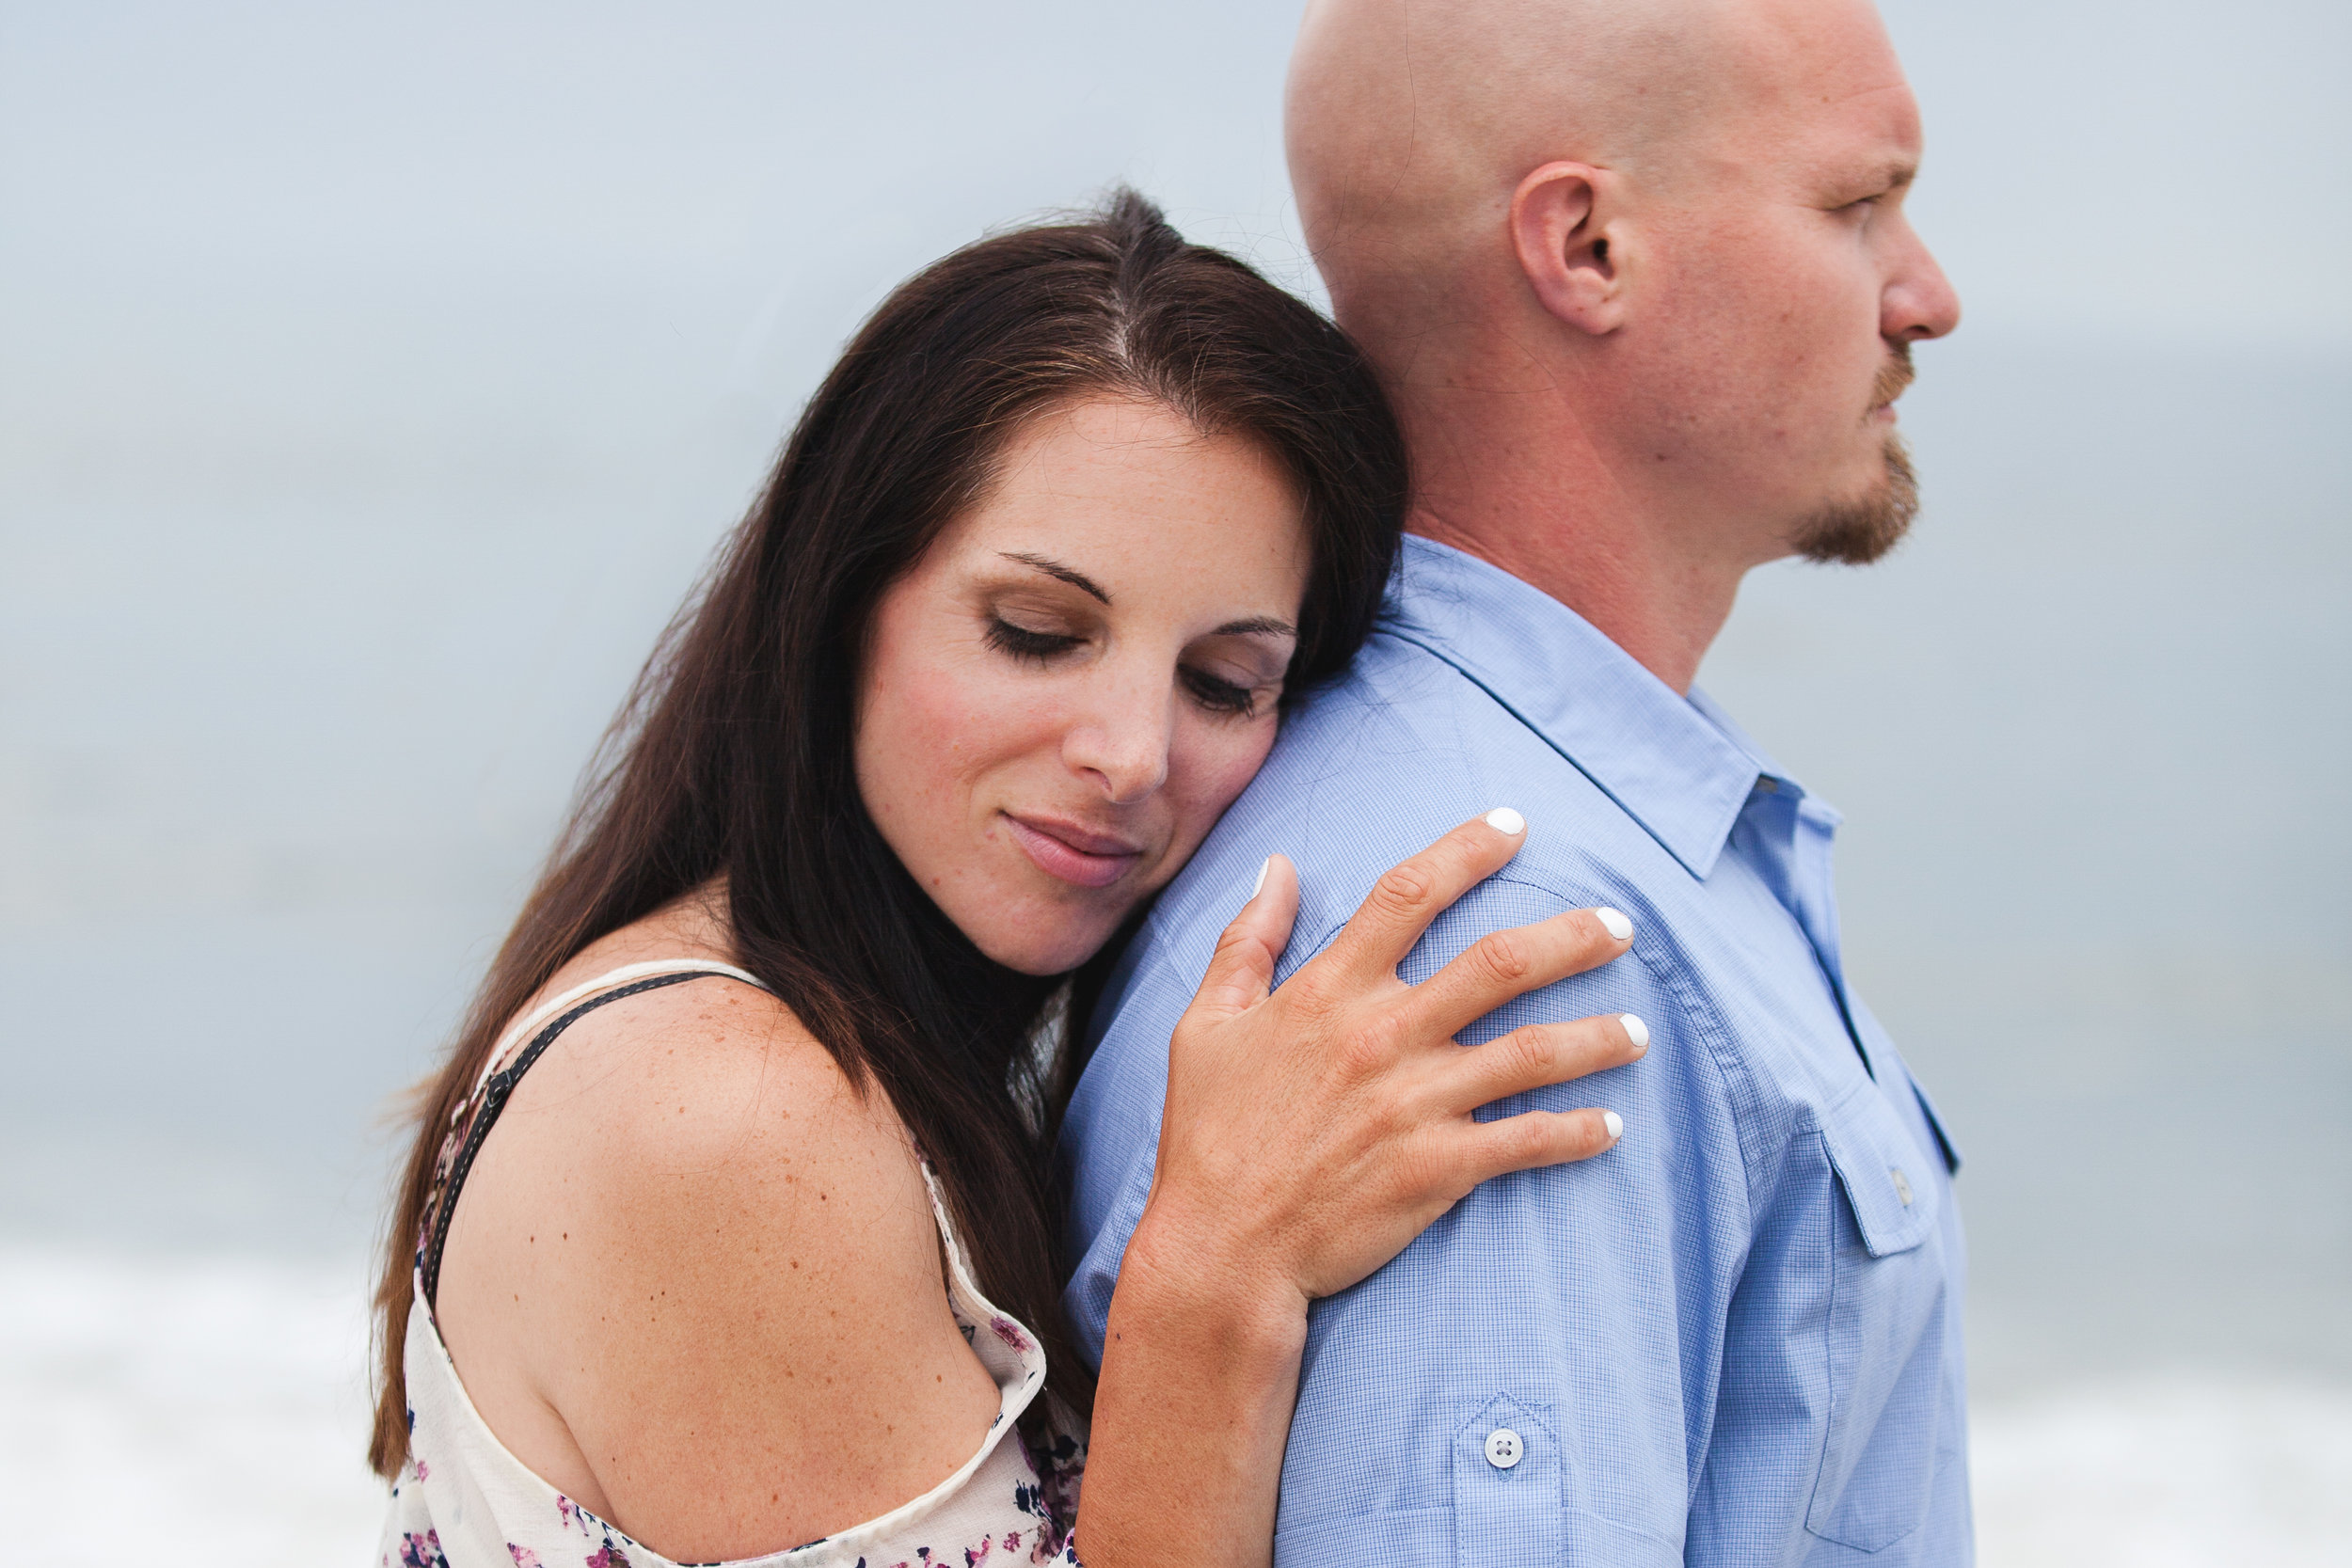 StaceyandJohnEngagementPrints-34.jpg